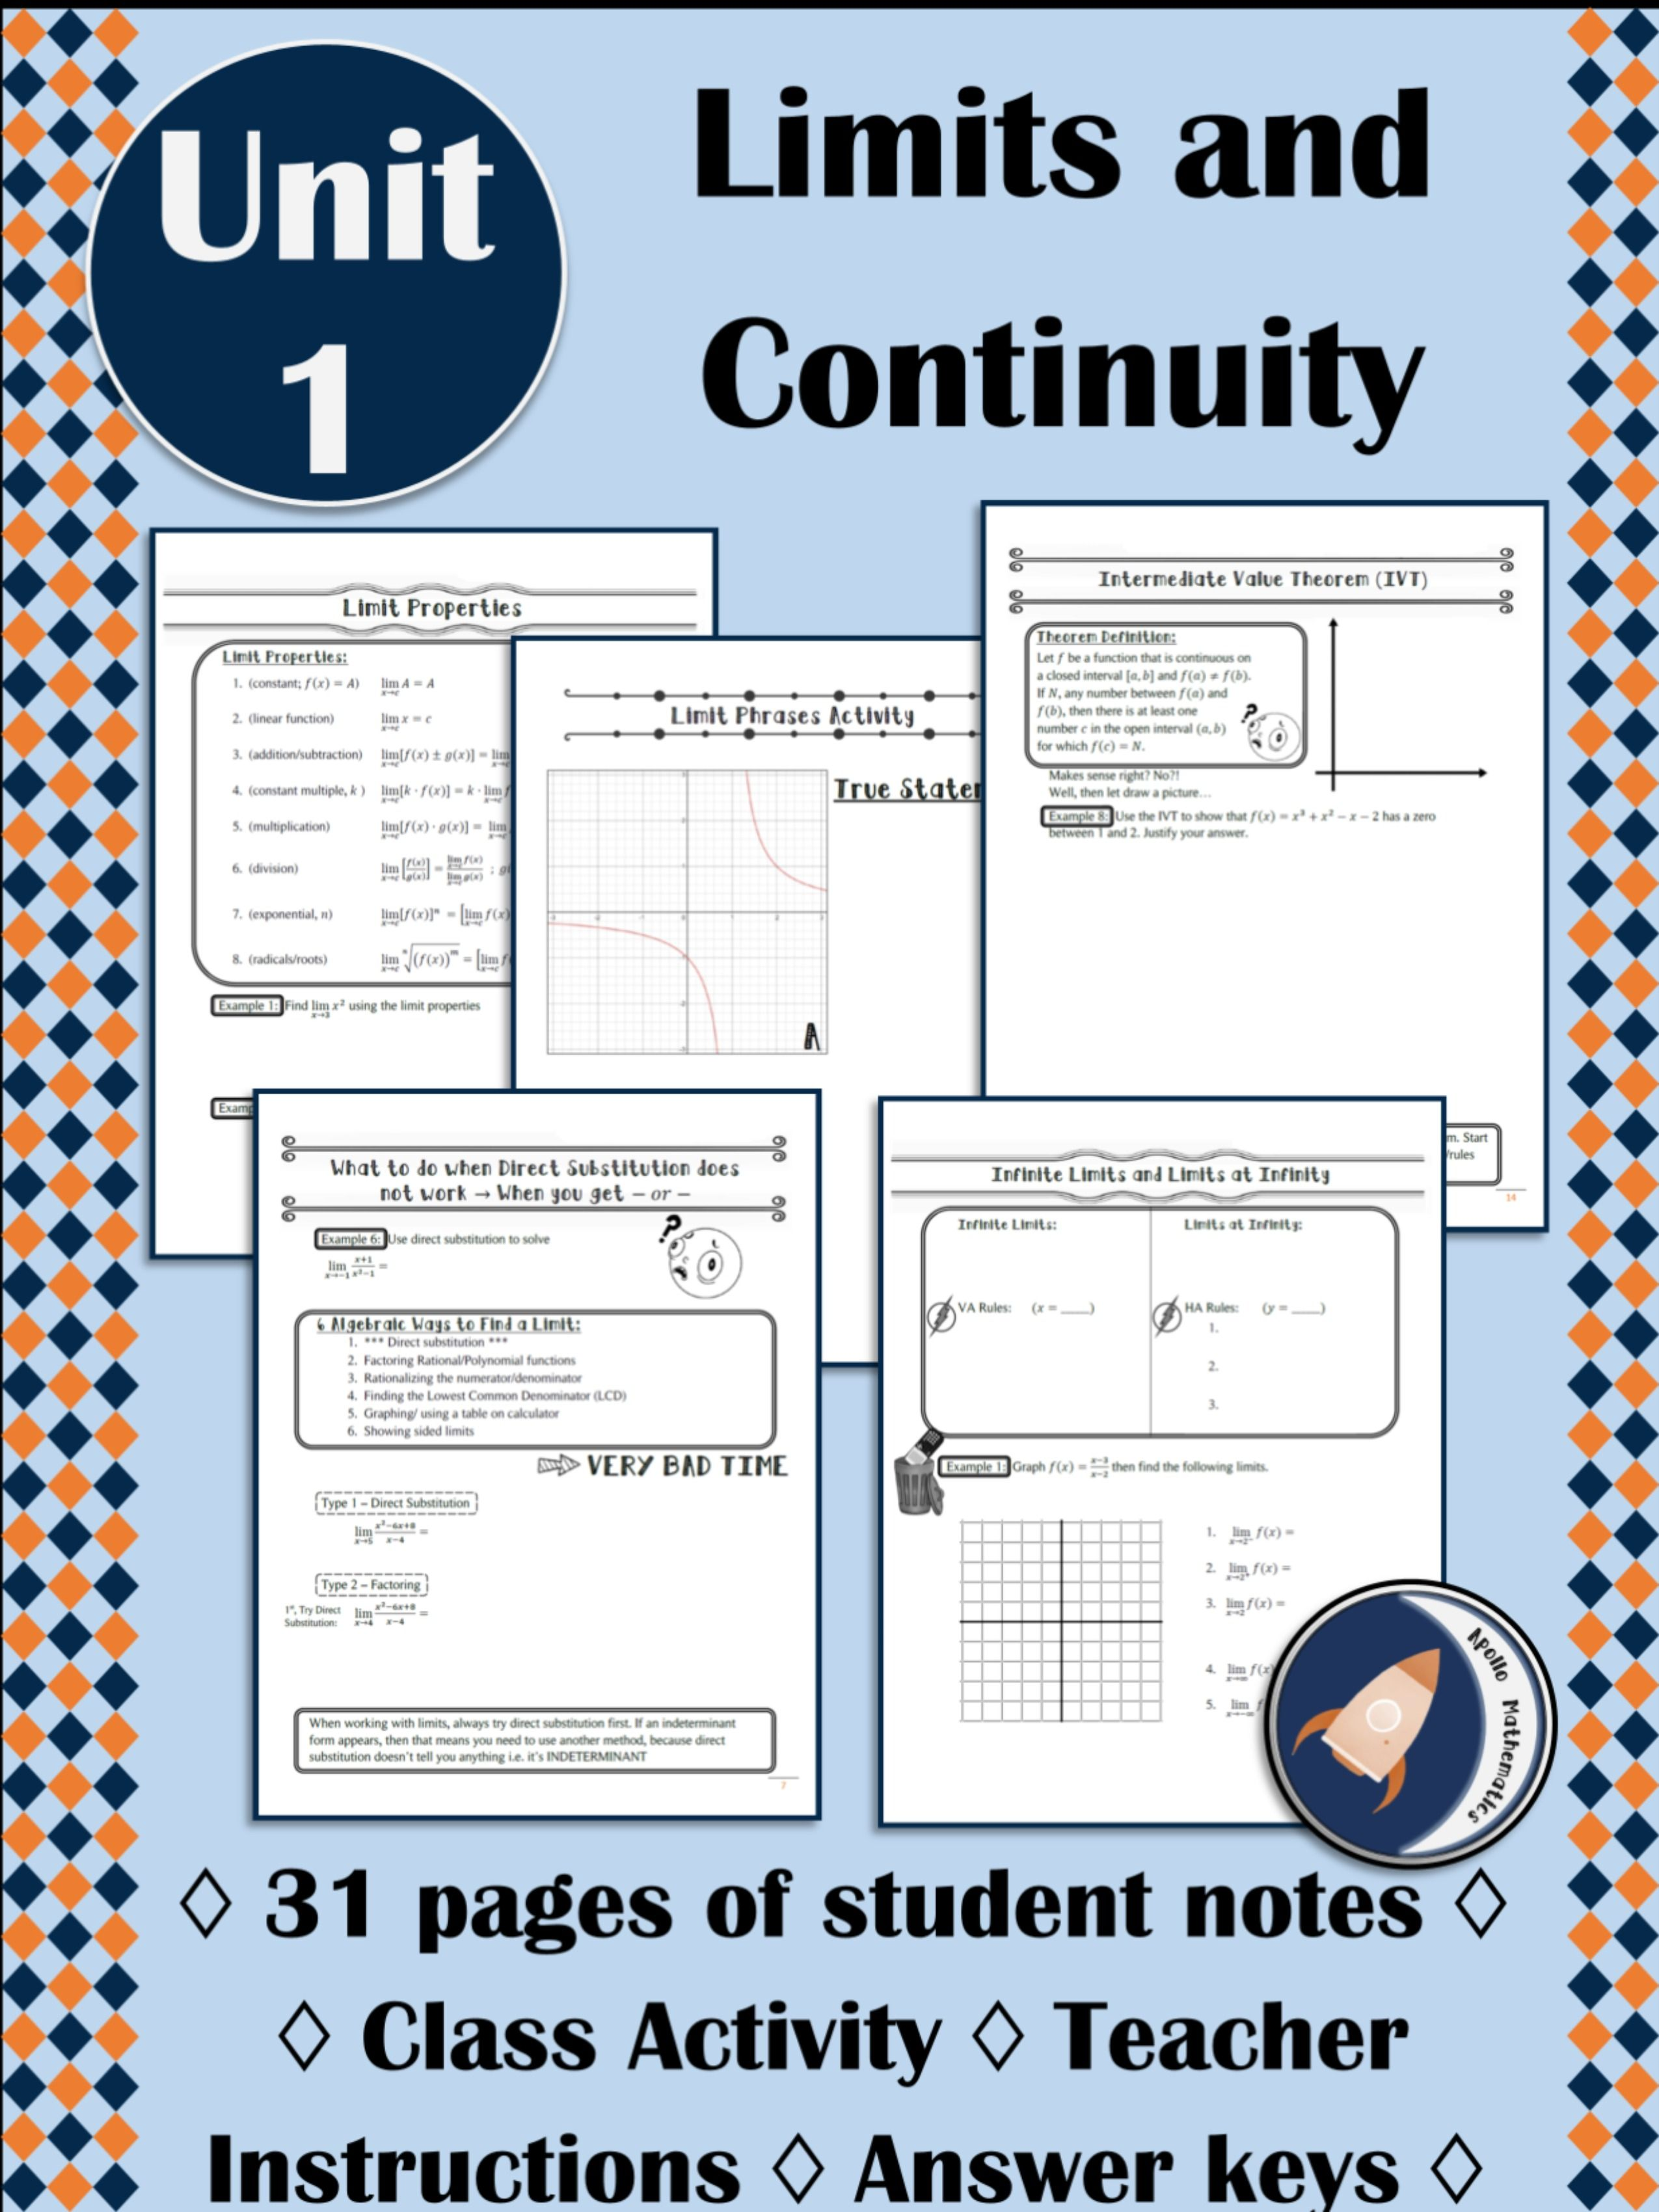 Limits And Continuity Notes Ap Calculus Ab Bc In 2020 Ap Calculus Ab Ap Calculus Mathematics